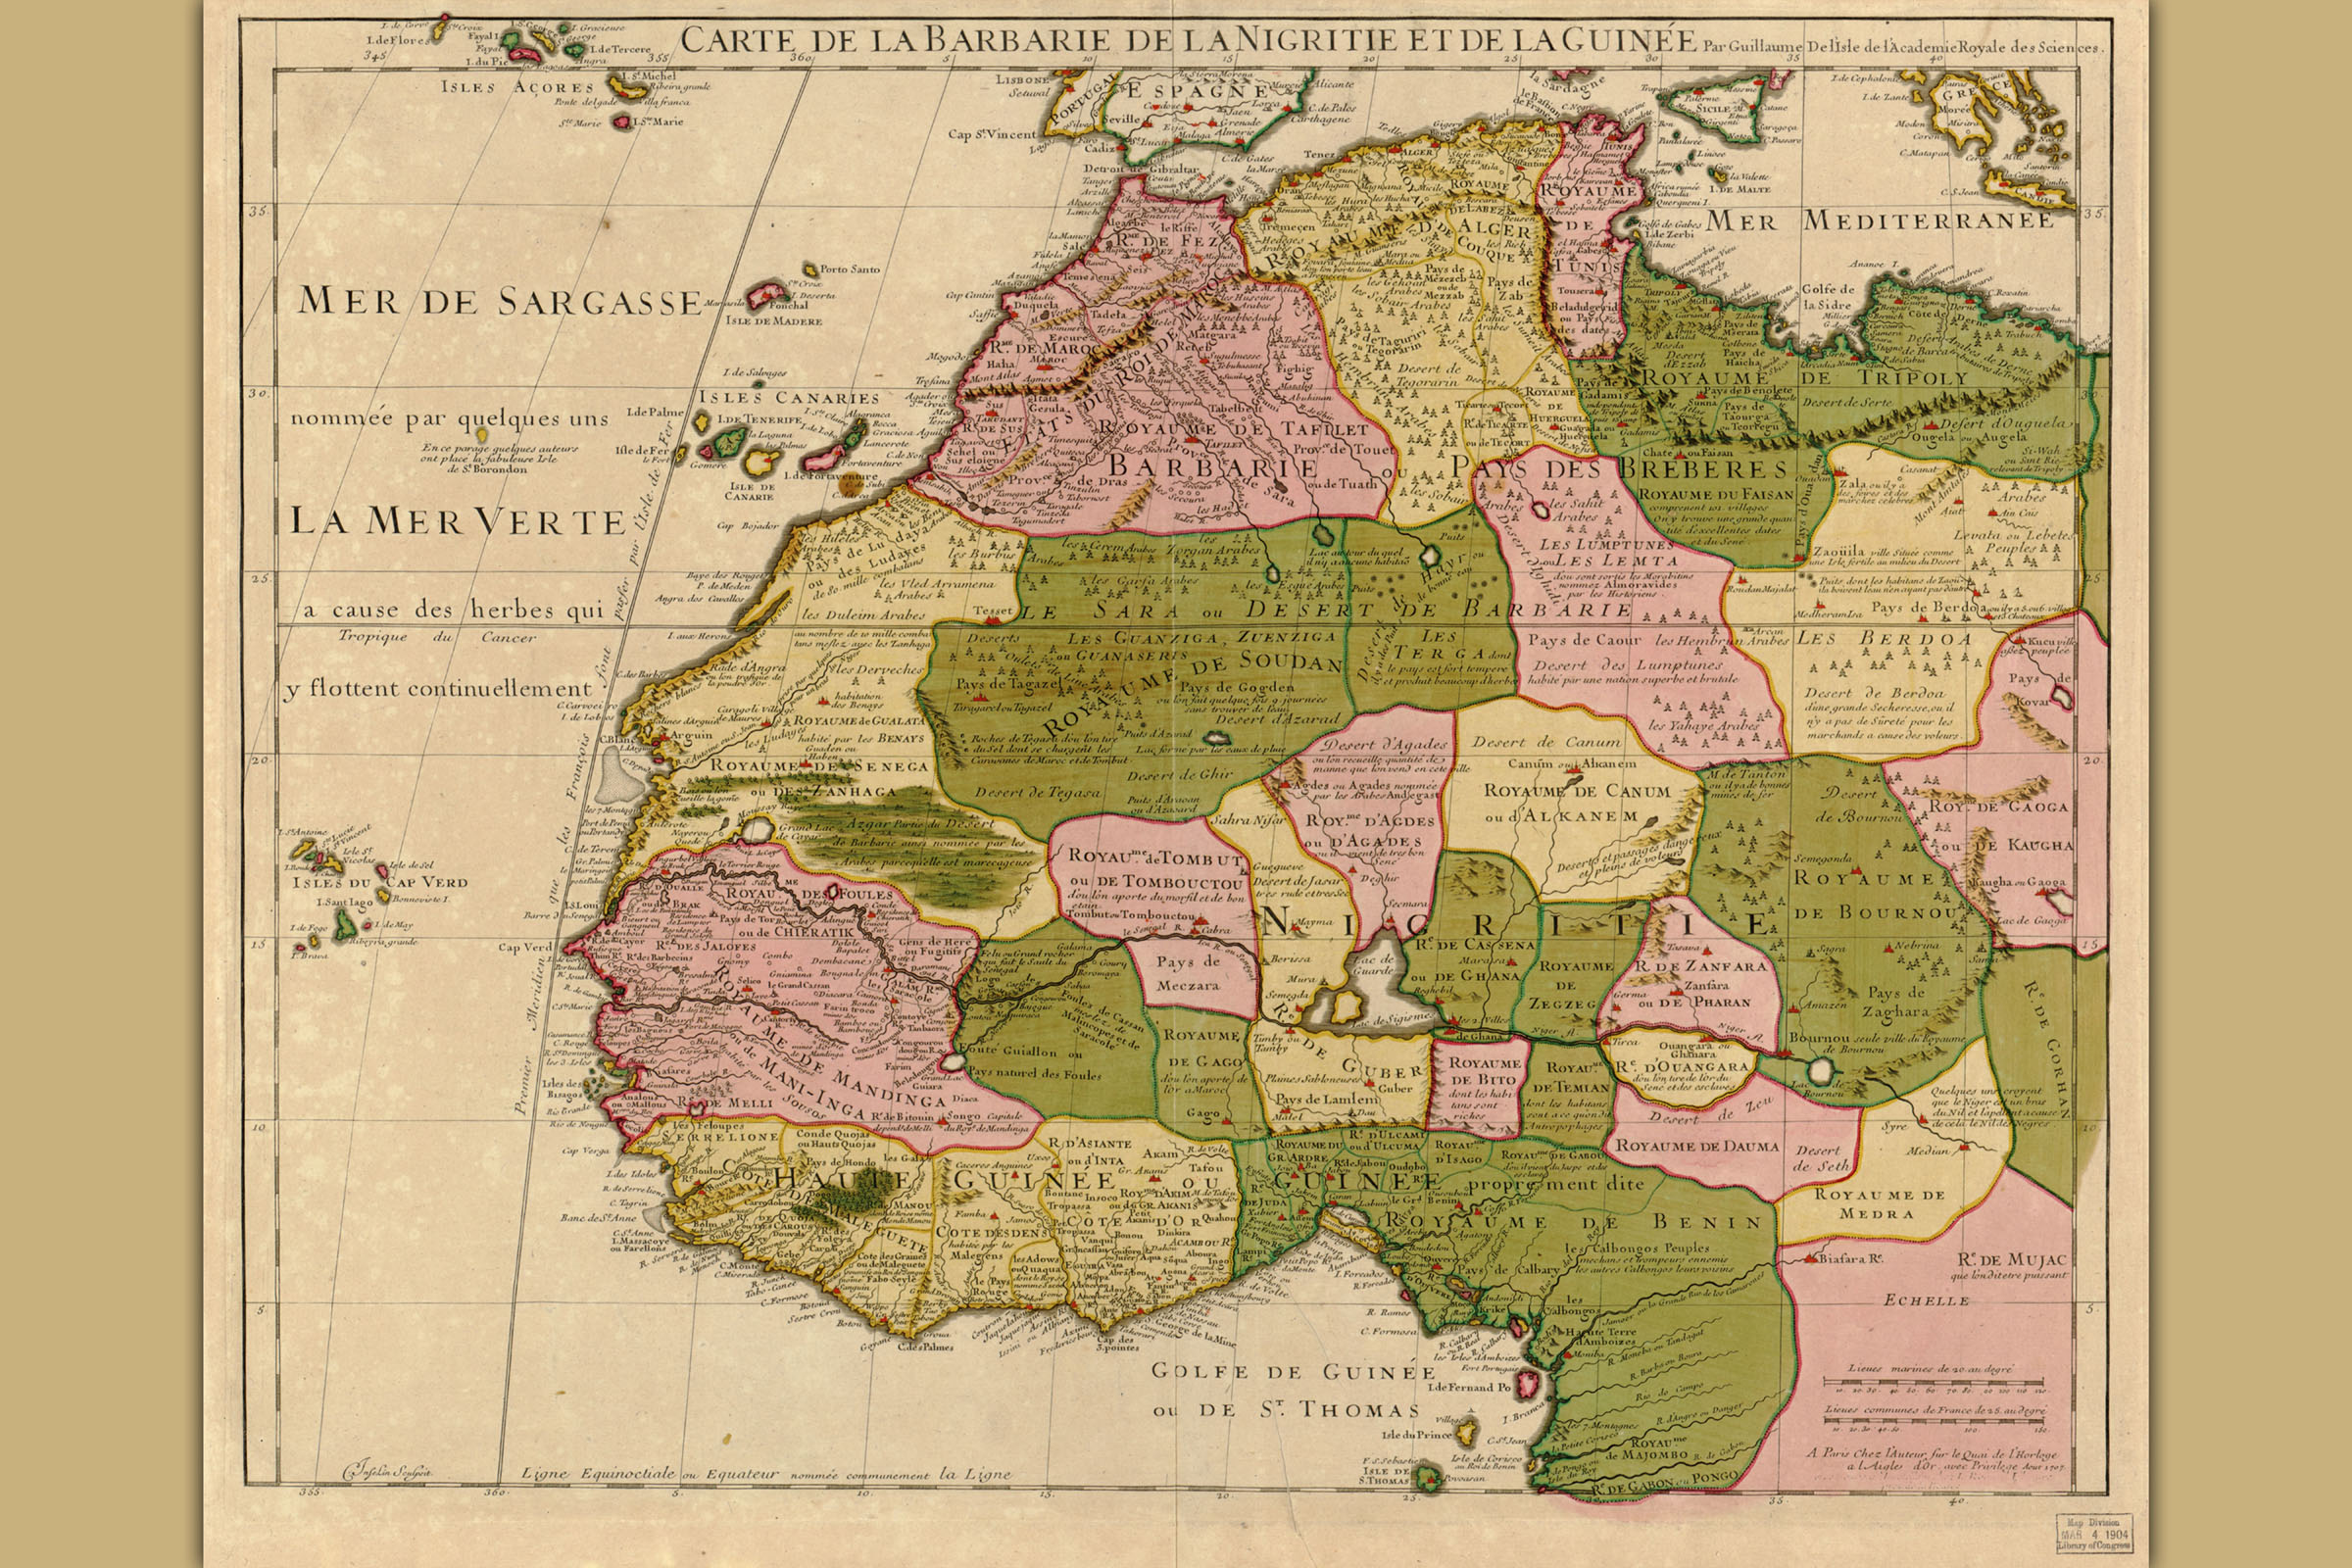 Map Of Northwest Africa Northwest Africa; Antique Map by Guillaume Delisle, 1707 | eBay